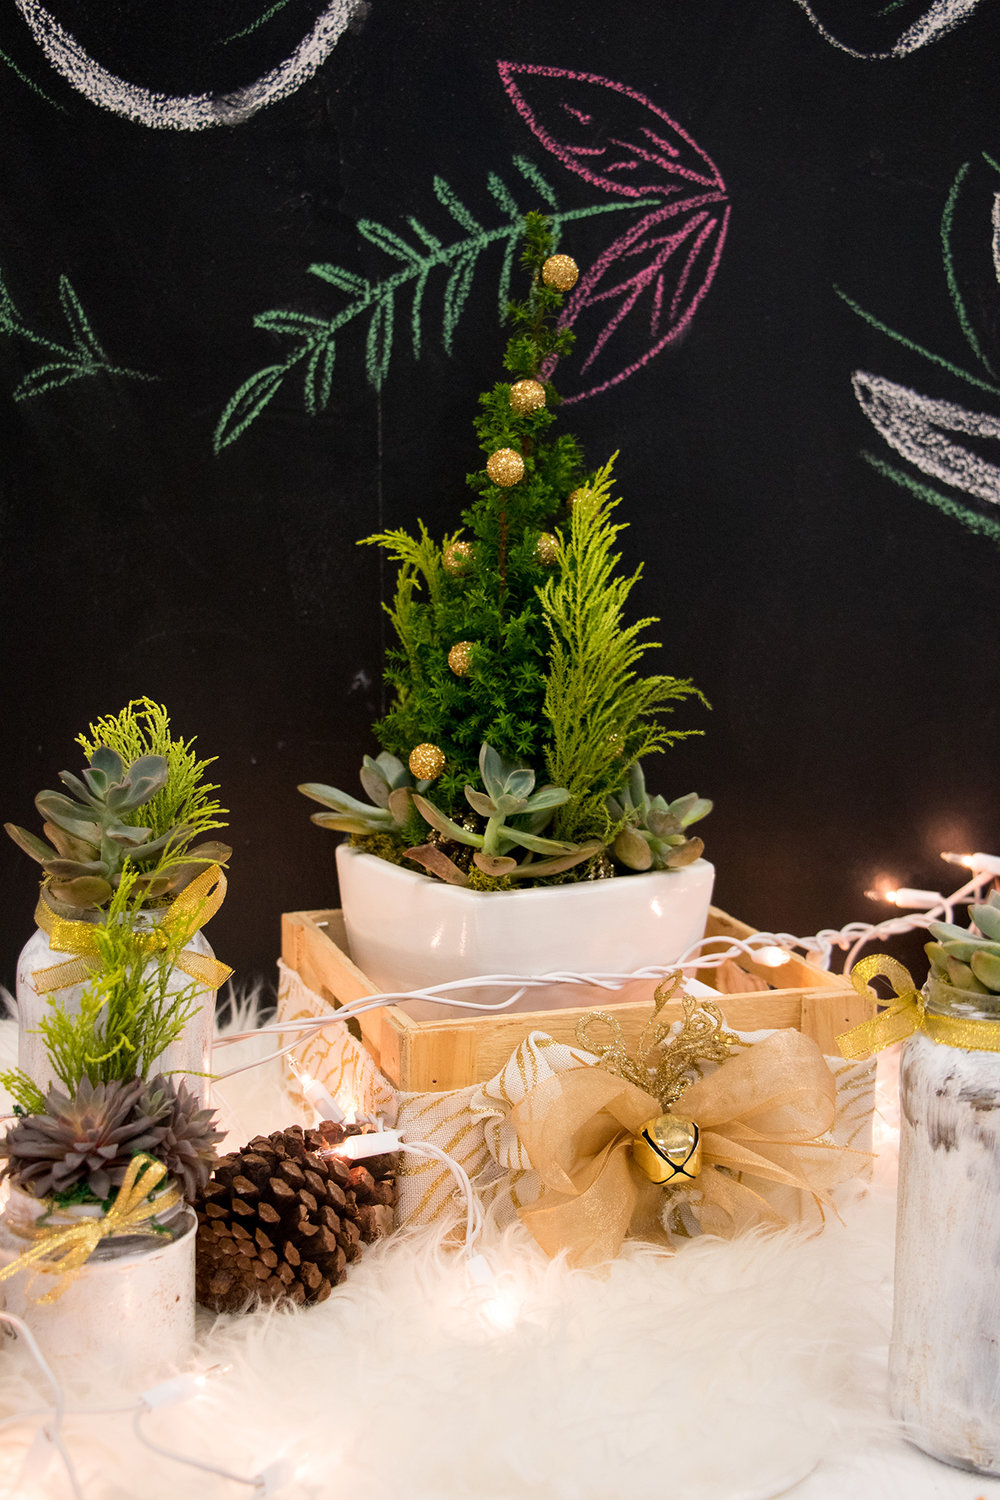 Fun Christmas Table Decor | The Key To Blog Blogging Creative Workshop